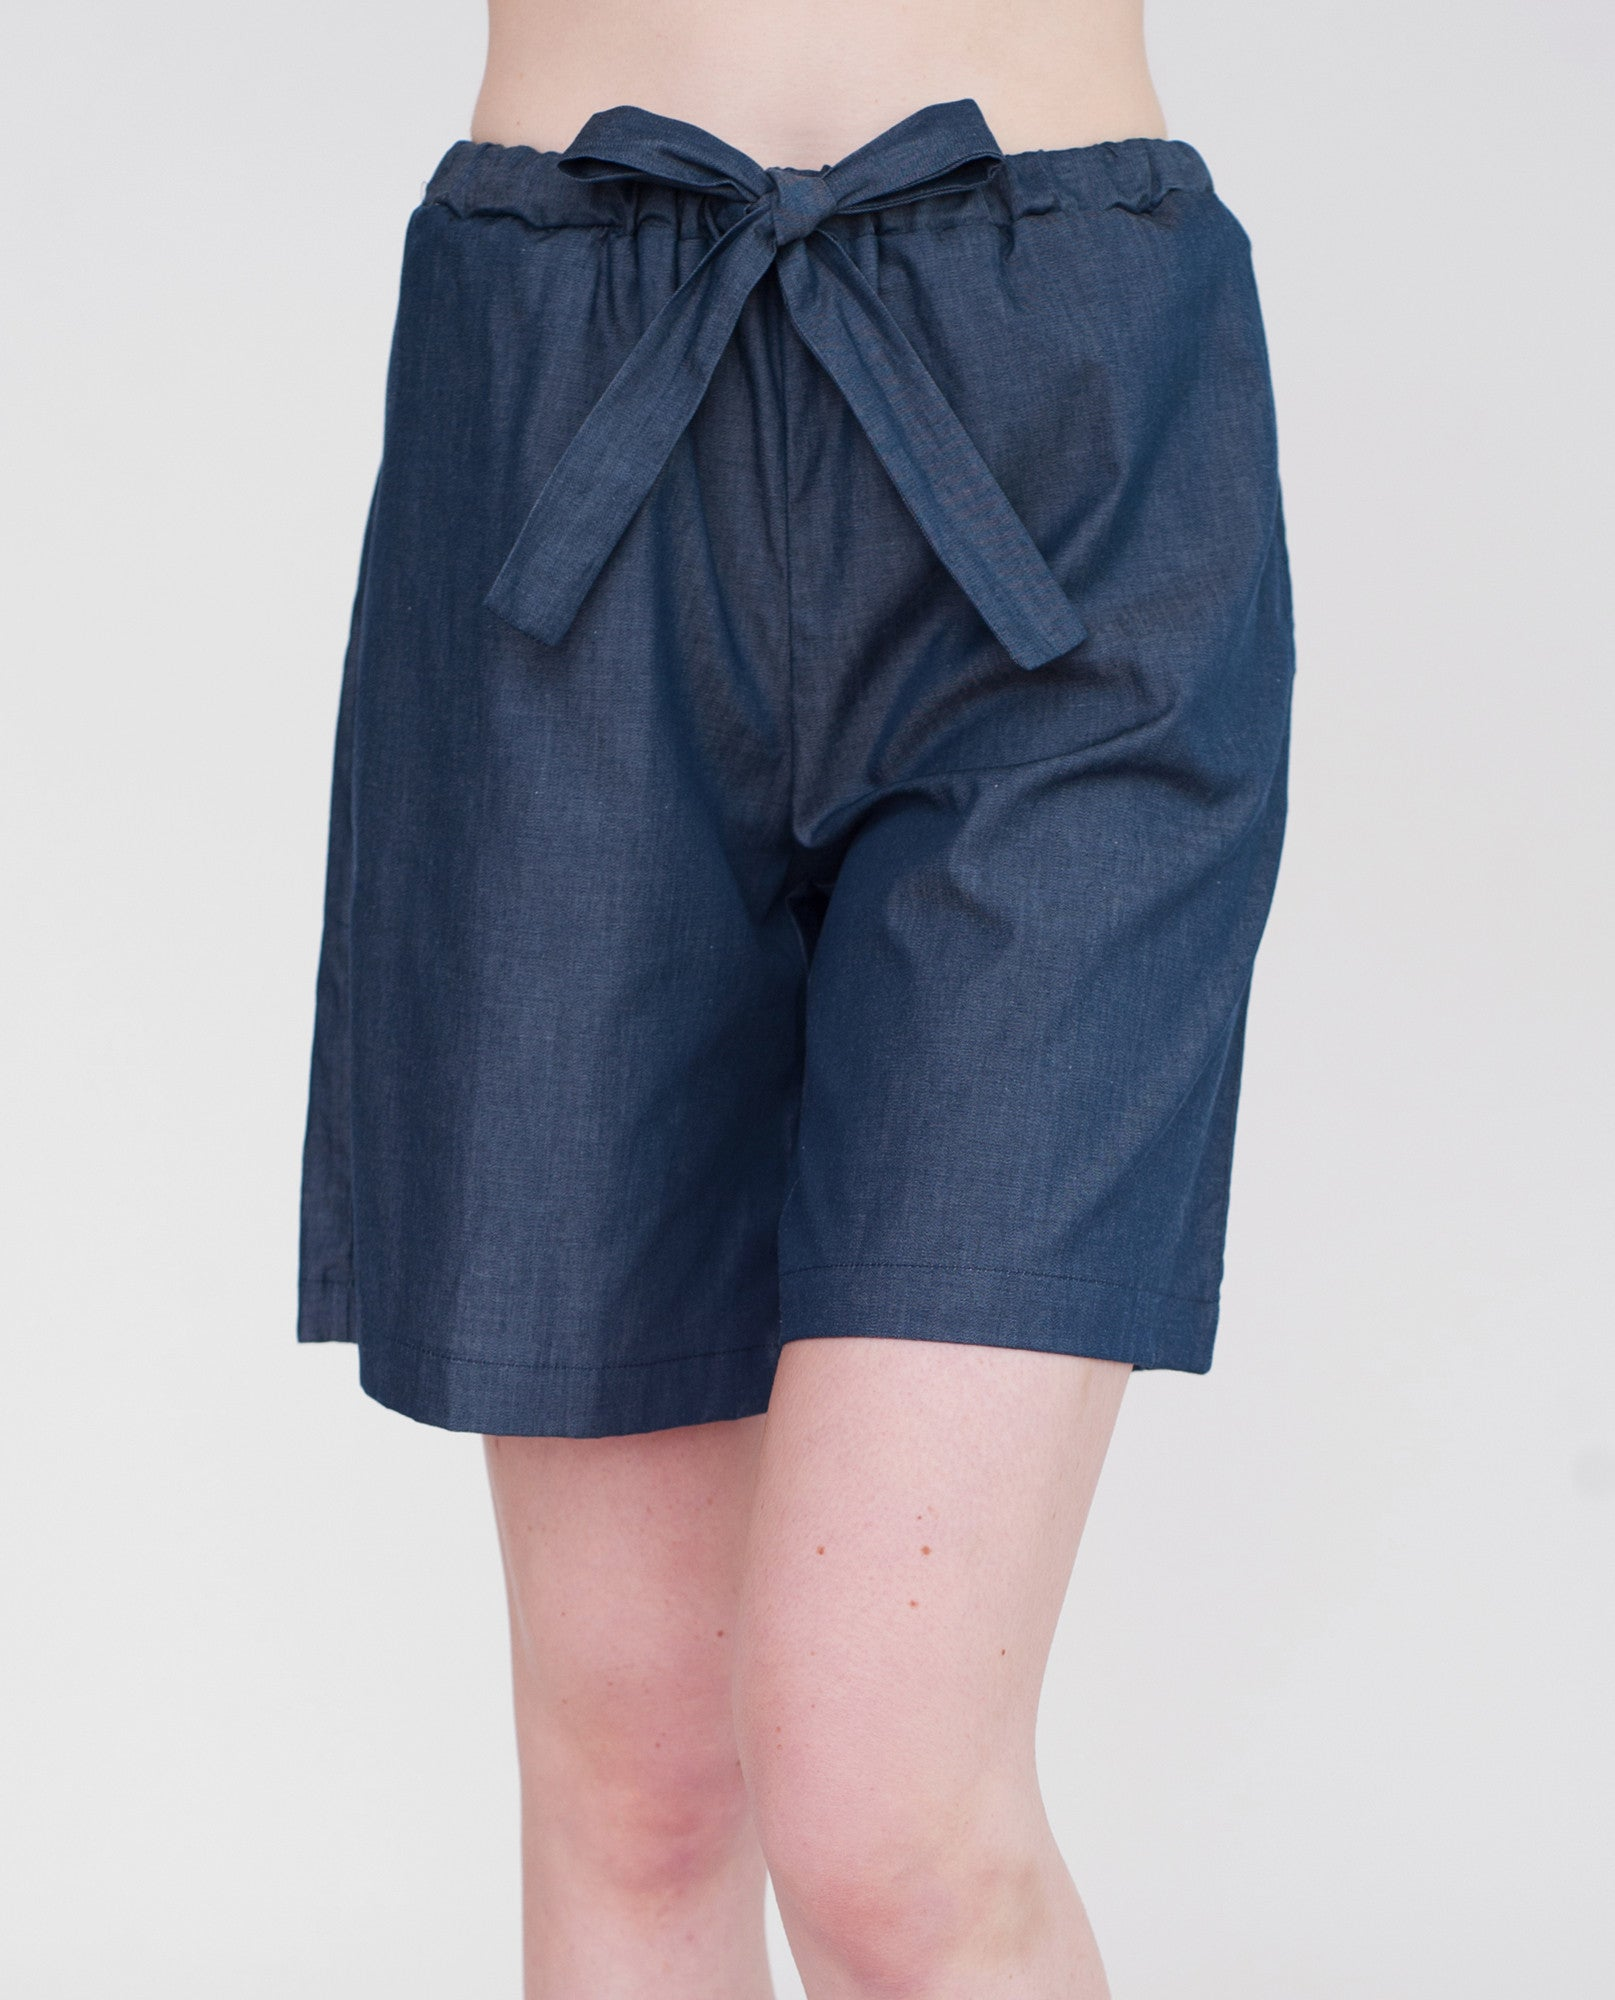 TABBY Cotton Denim Shorts In Navy Denim